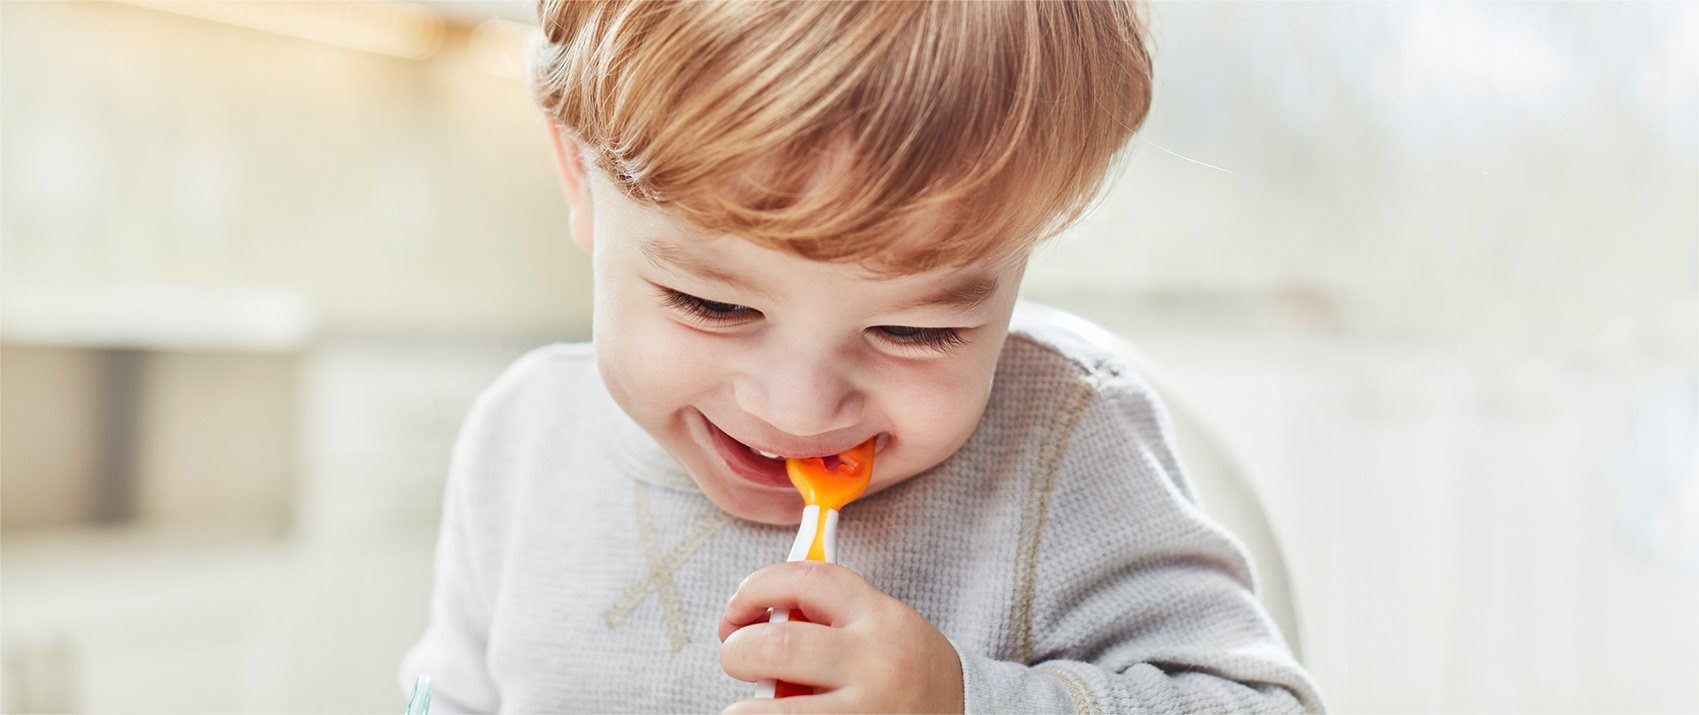 ¿Son las cucharas compatibles con el Baby-led weaning? - Kinder Republik